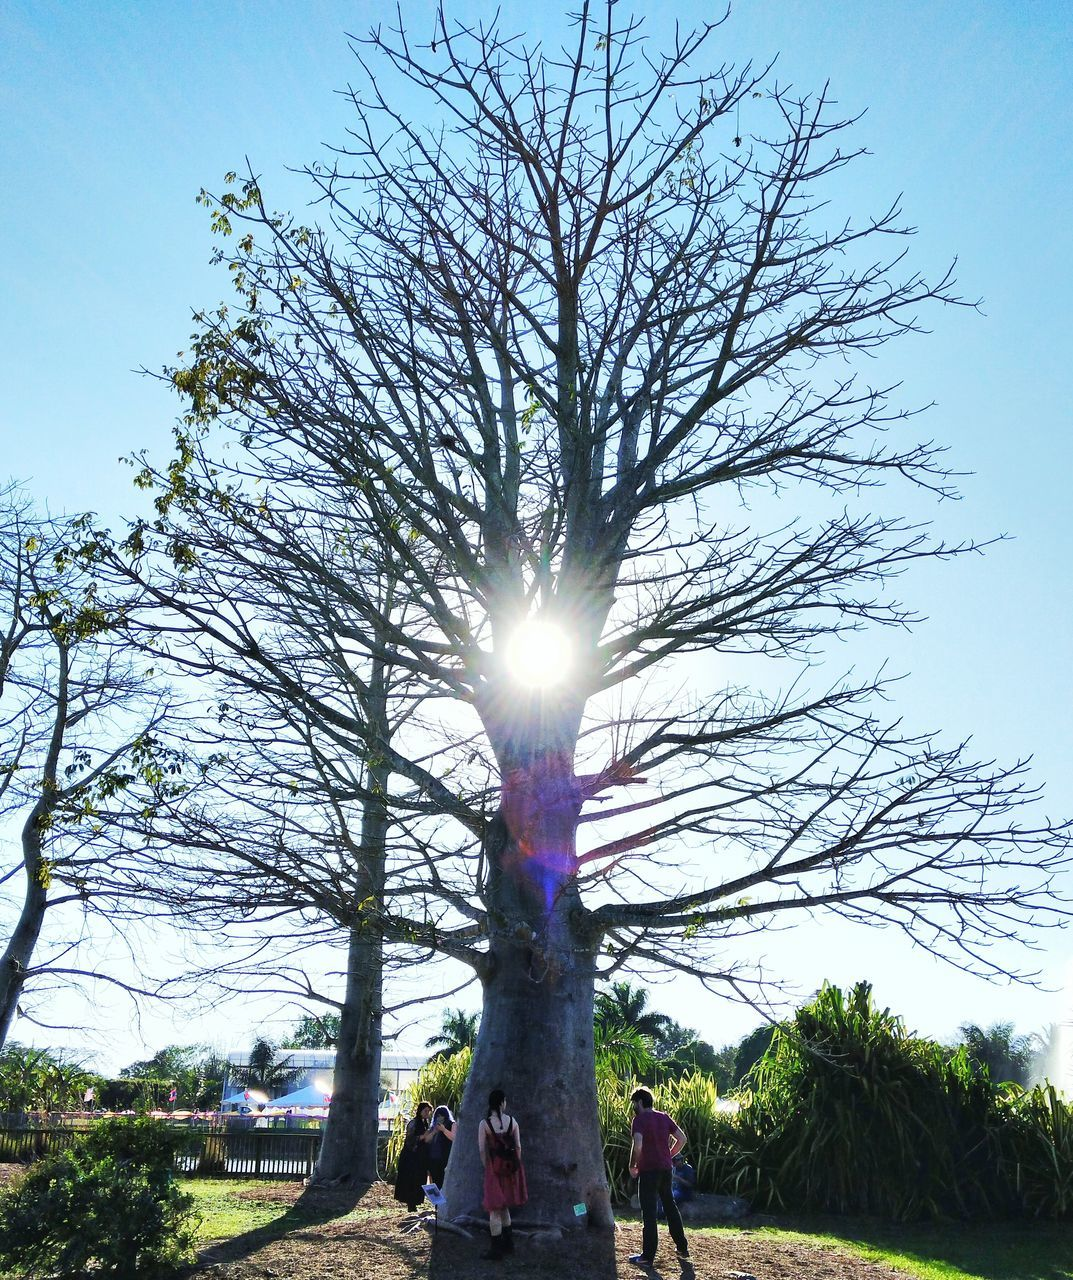 tree, lens flare, sunlight, sunbeam, sun, leisure activity, real people, day, sky, nature, outdoors, low angle view, growth, togetherness, men, childhood, clear sky, grass, beauty in nature, branch, people